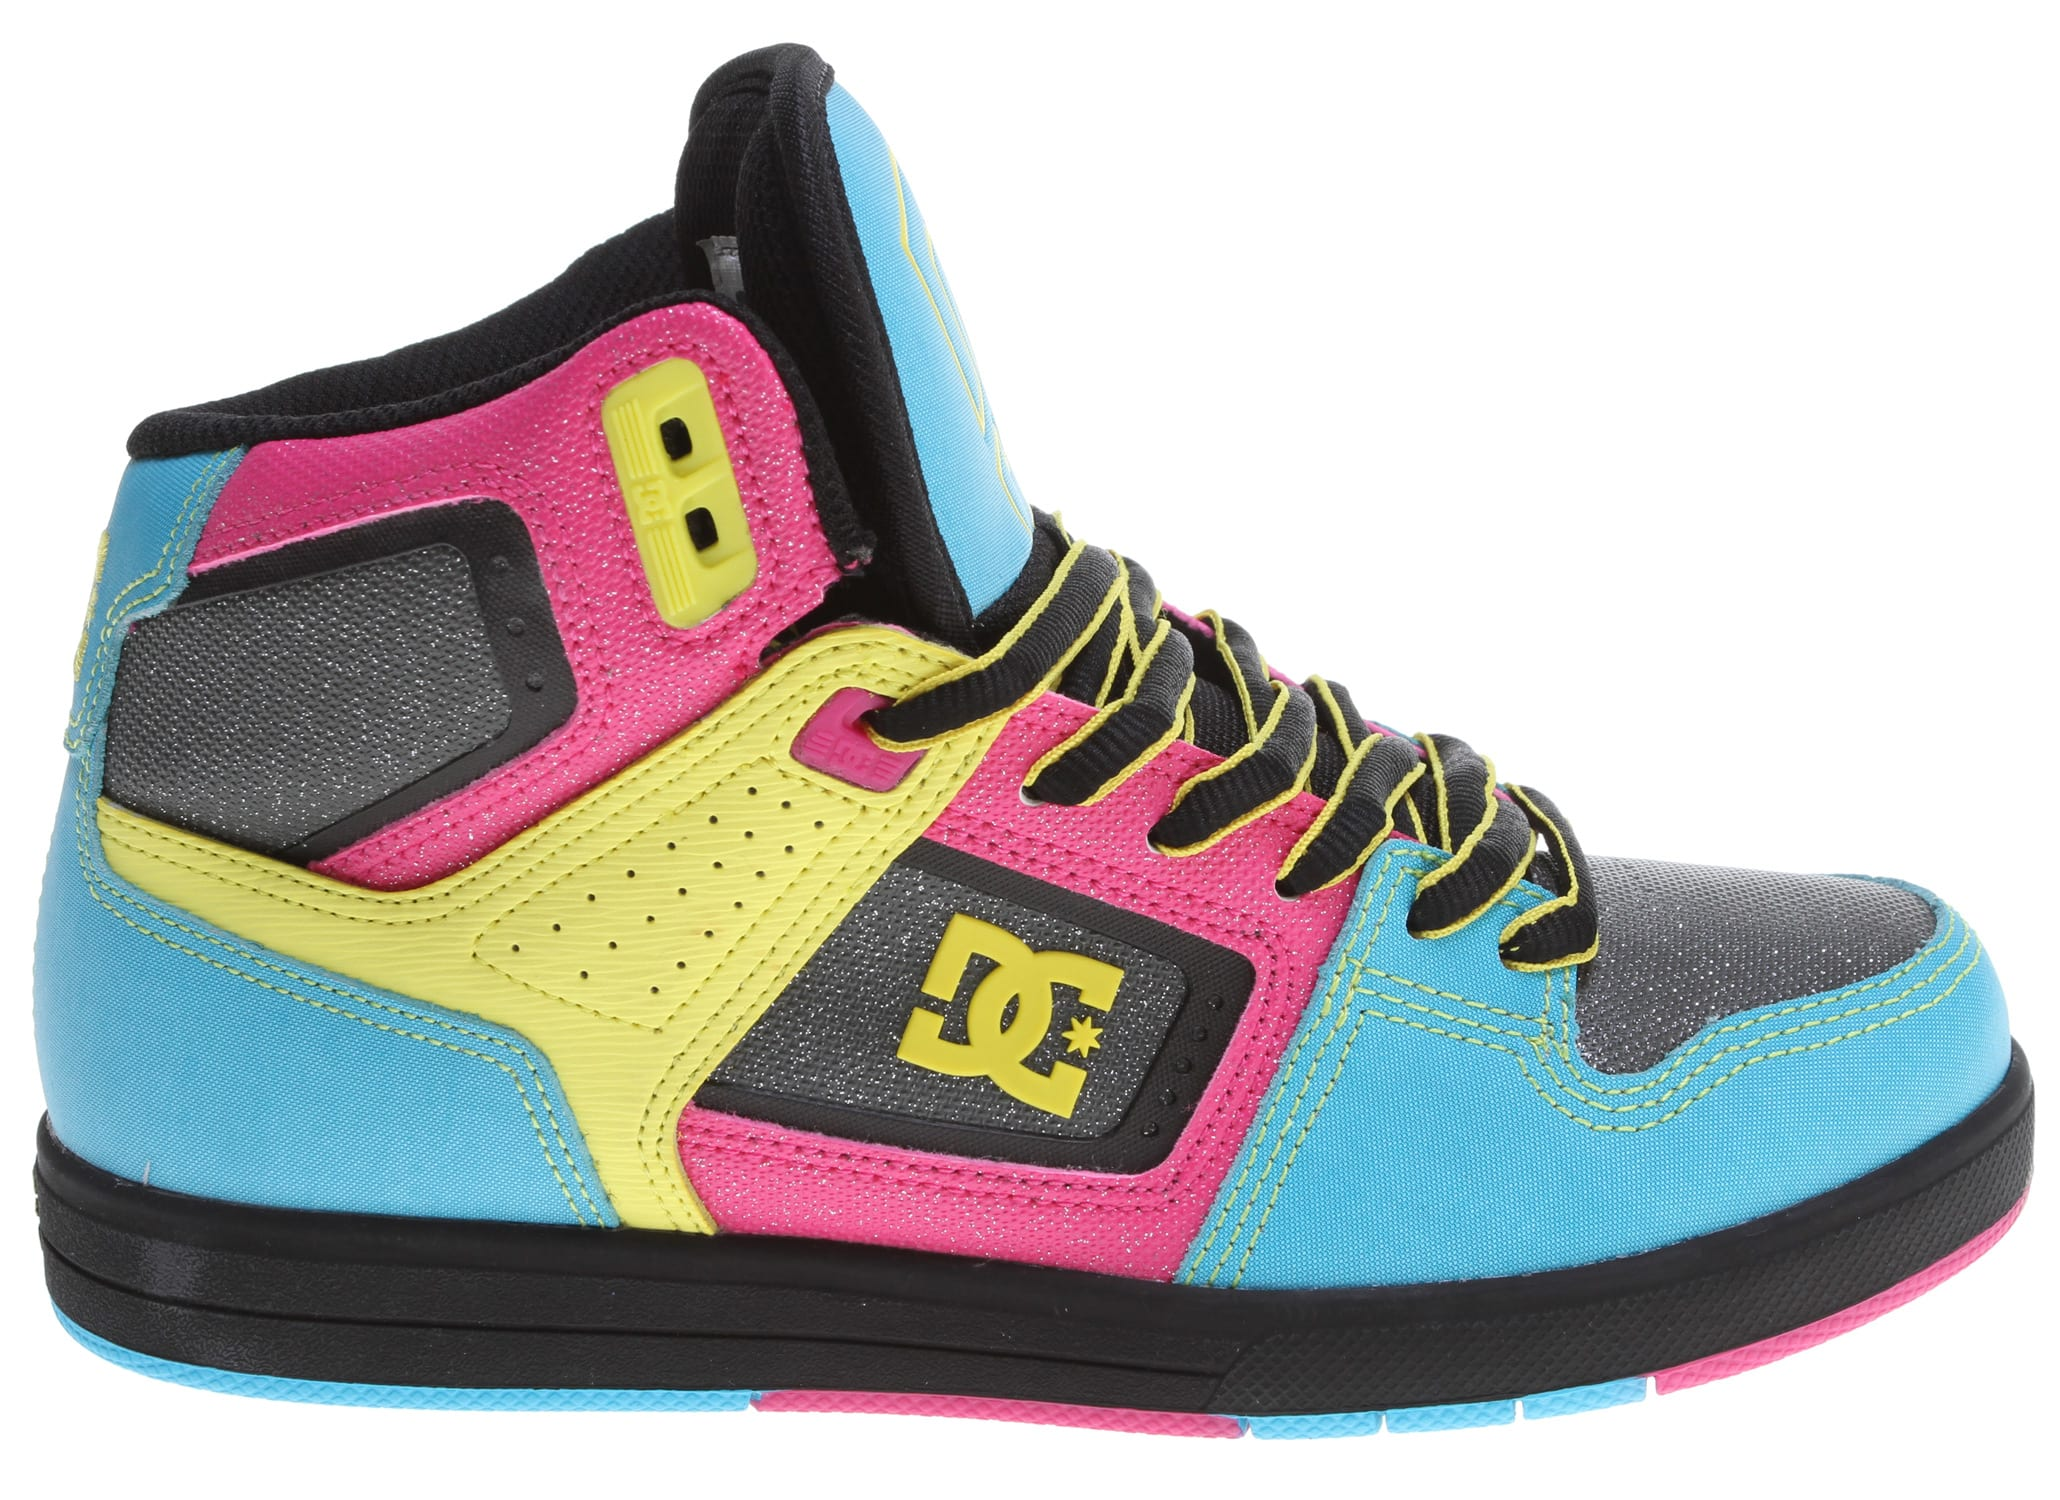 Womens DC Rebound Hi Skate Shoe - DC Shoes